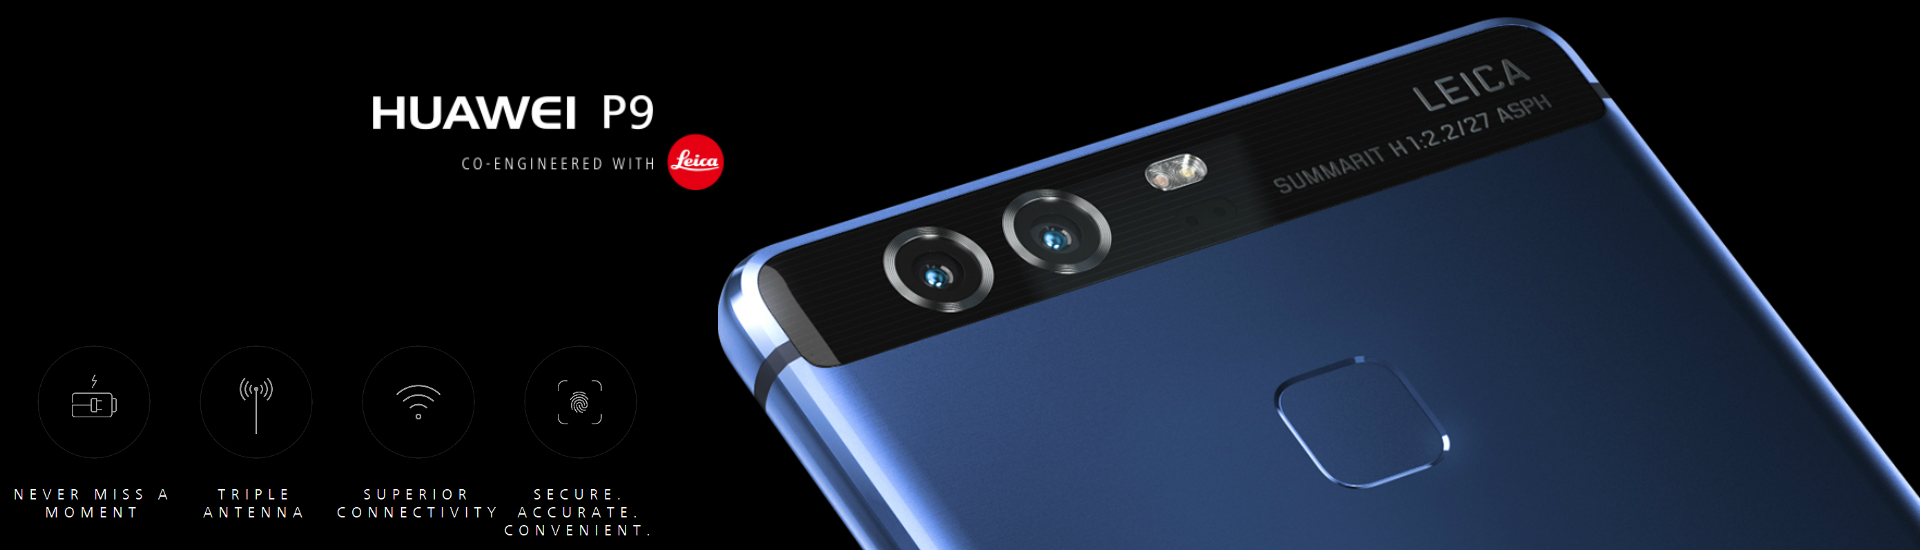 banner-huawei_p9_blue_NEW